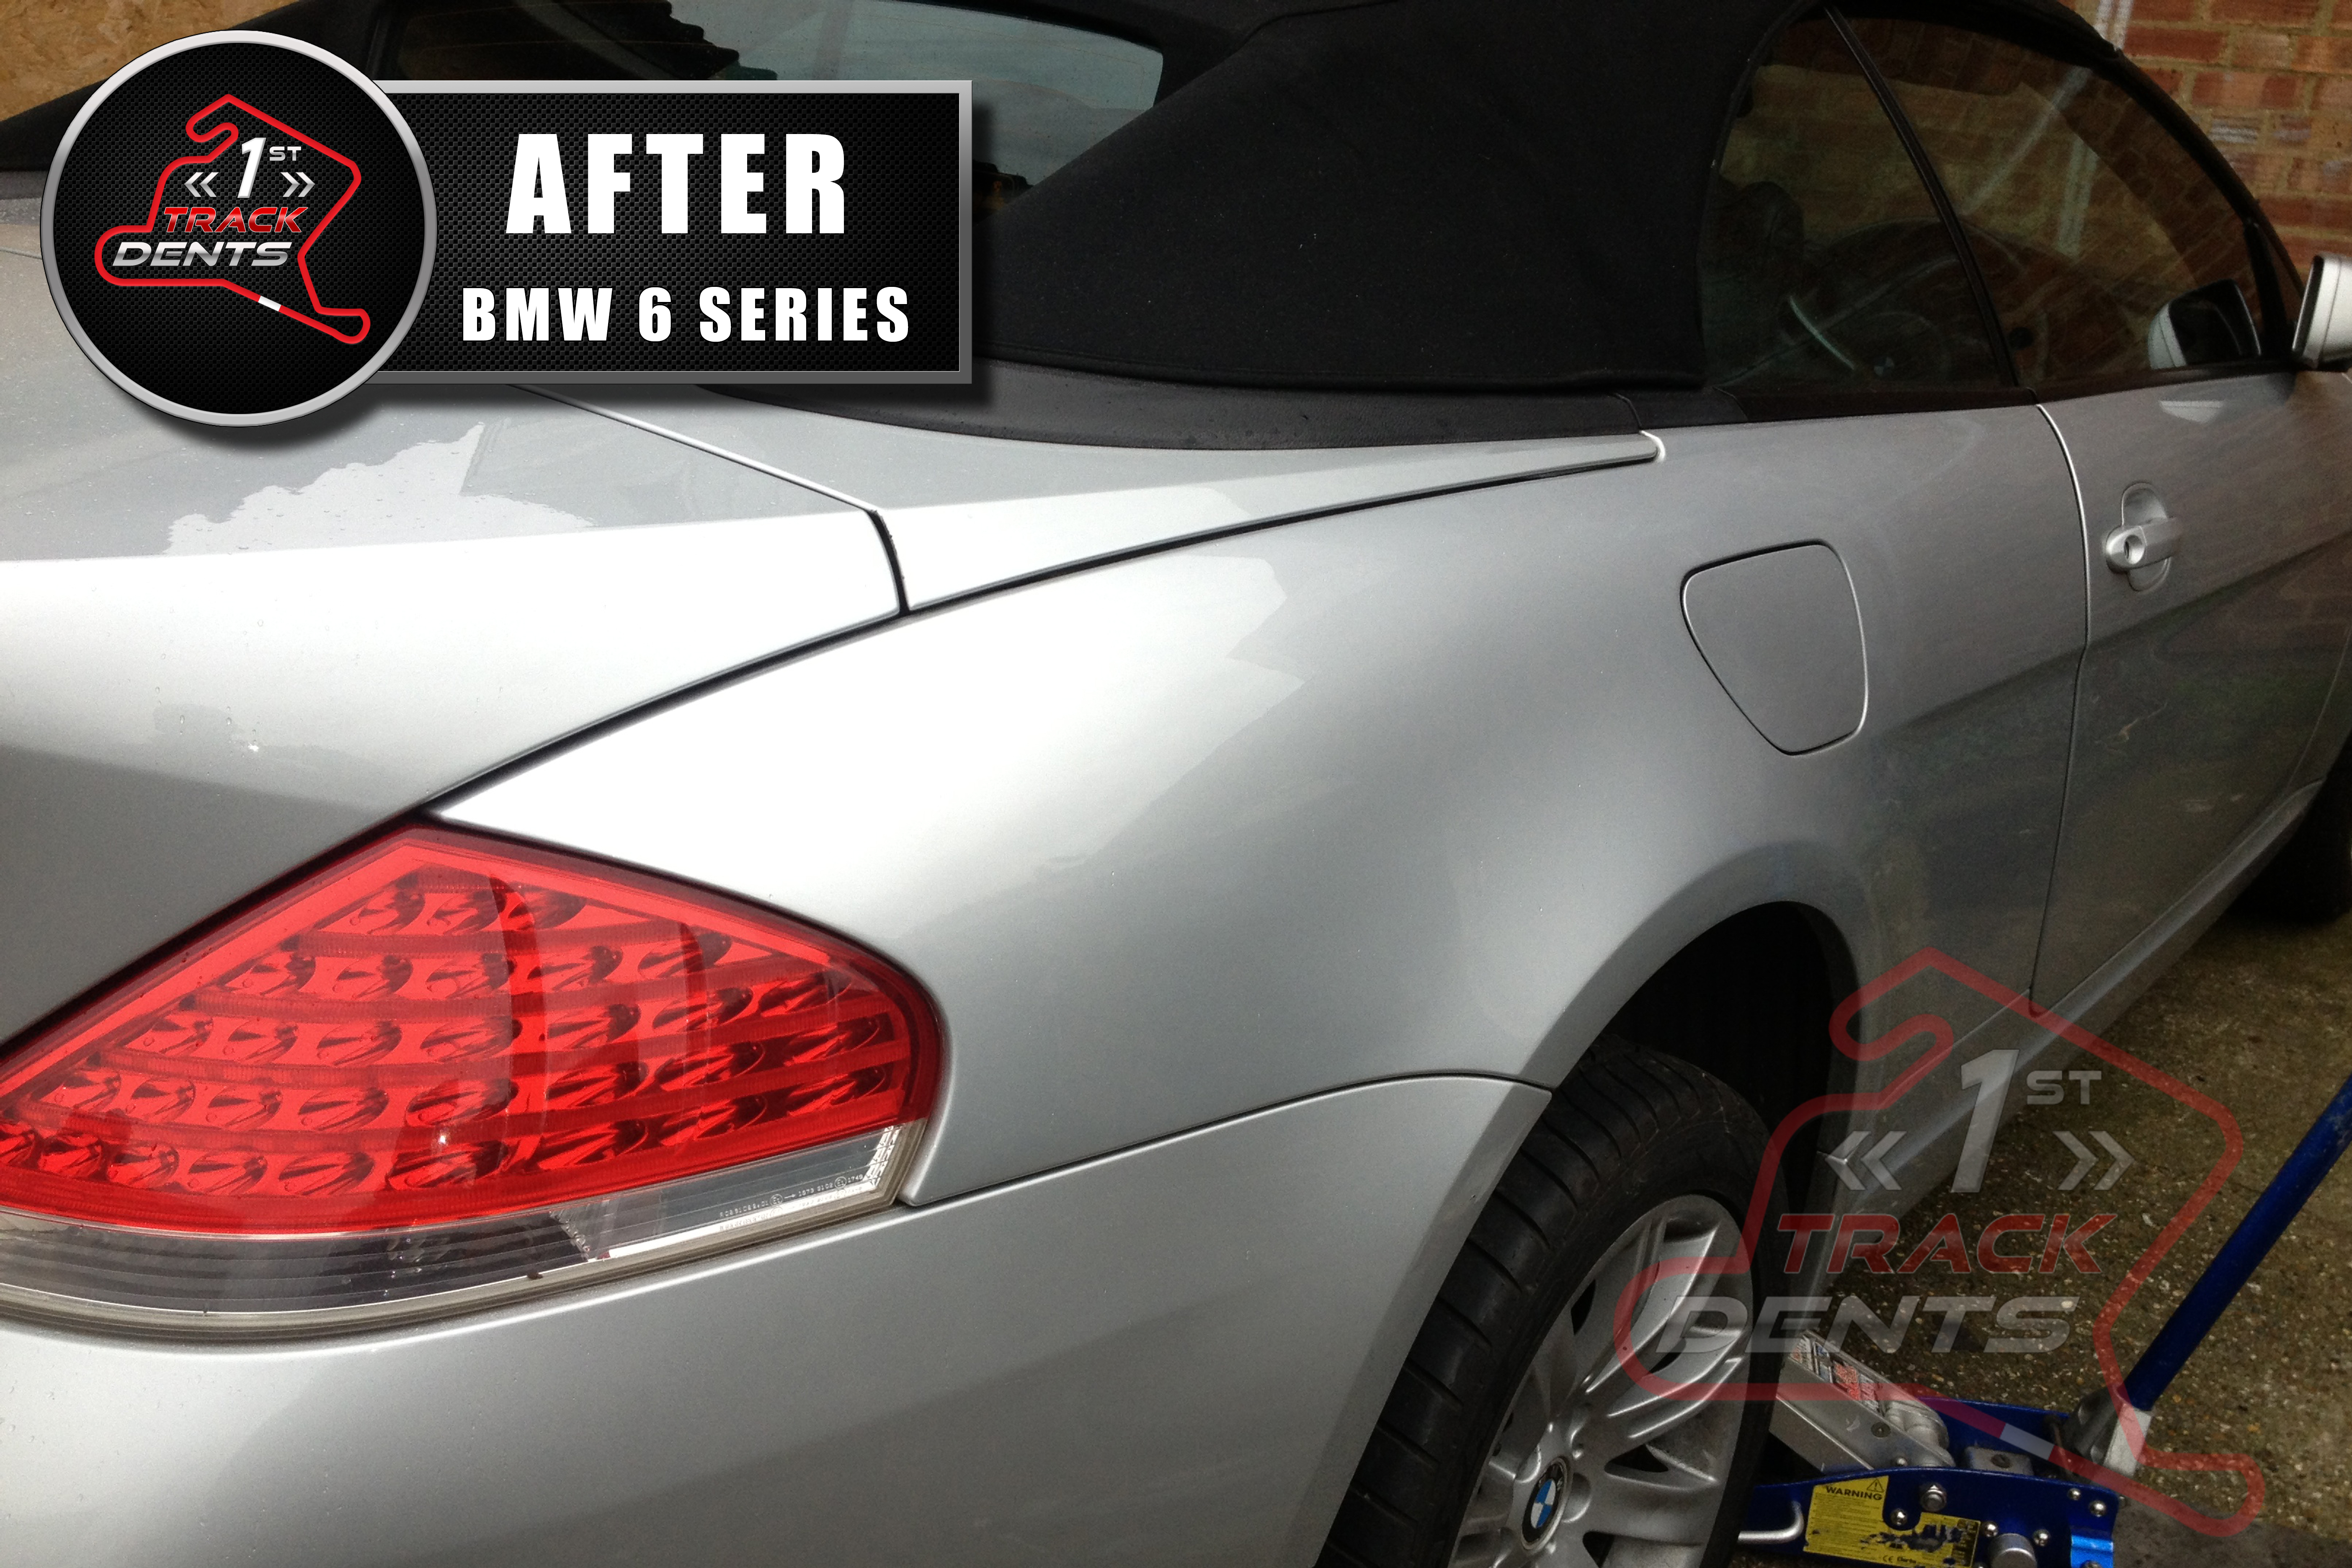 BMW 6 SERIES AFTER